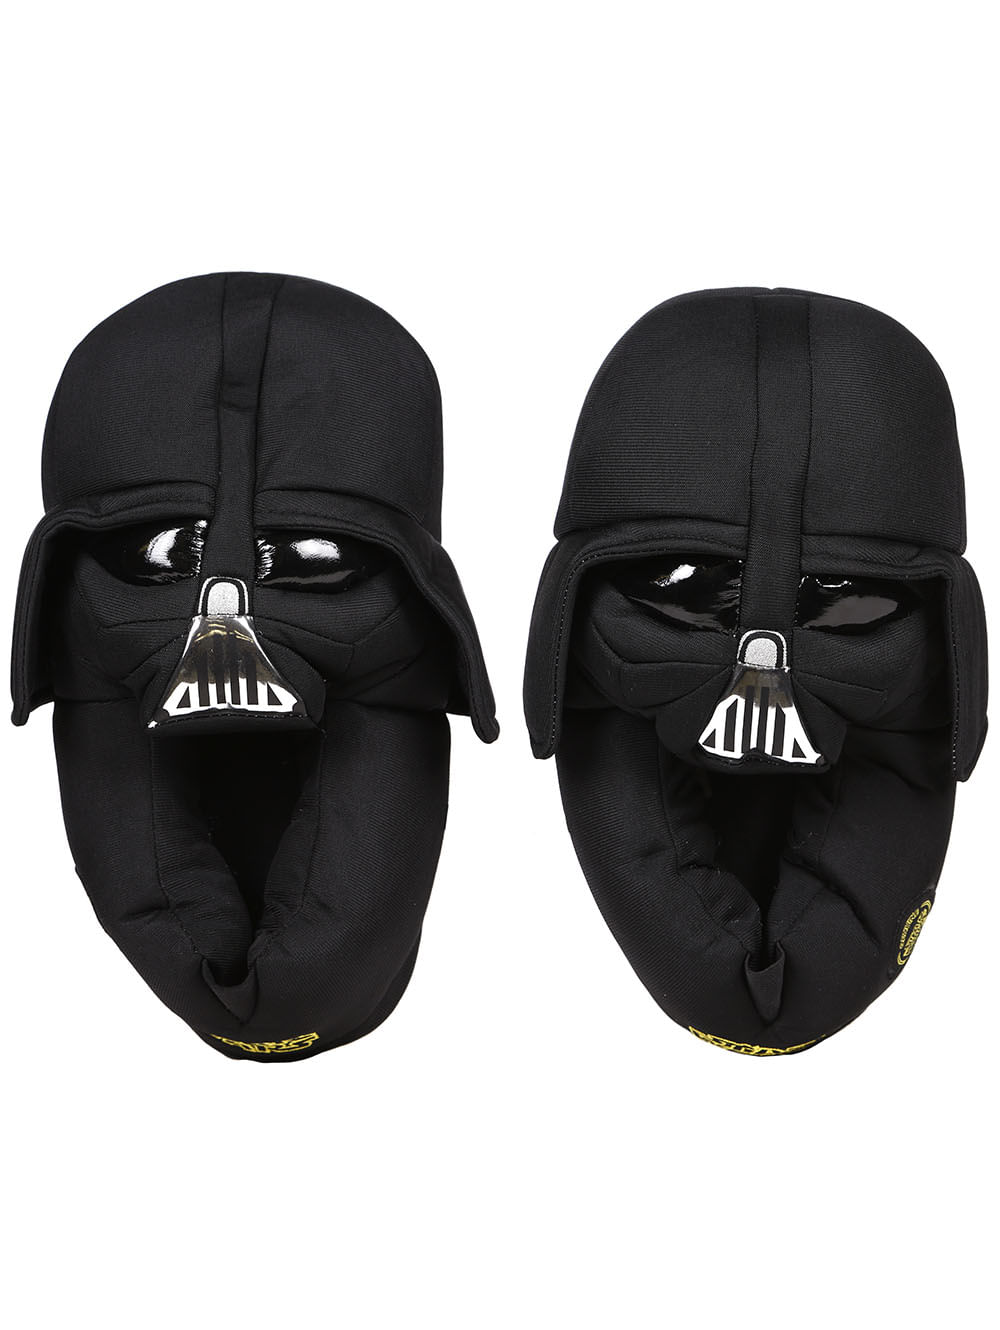 46cf70814a8c35 Pantufa Star Wars Darth Vader Preto